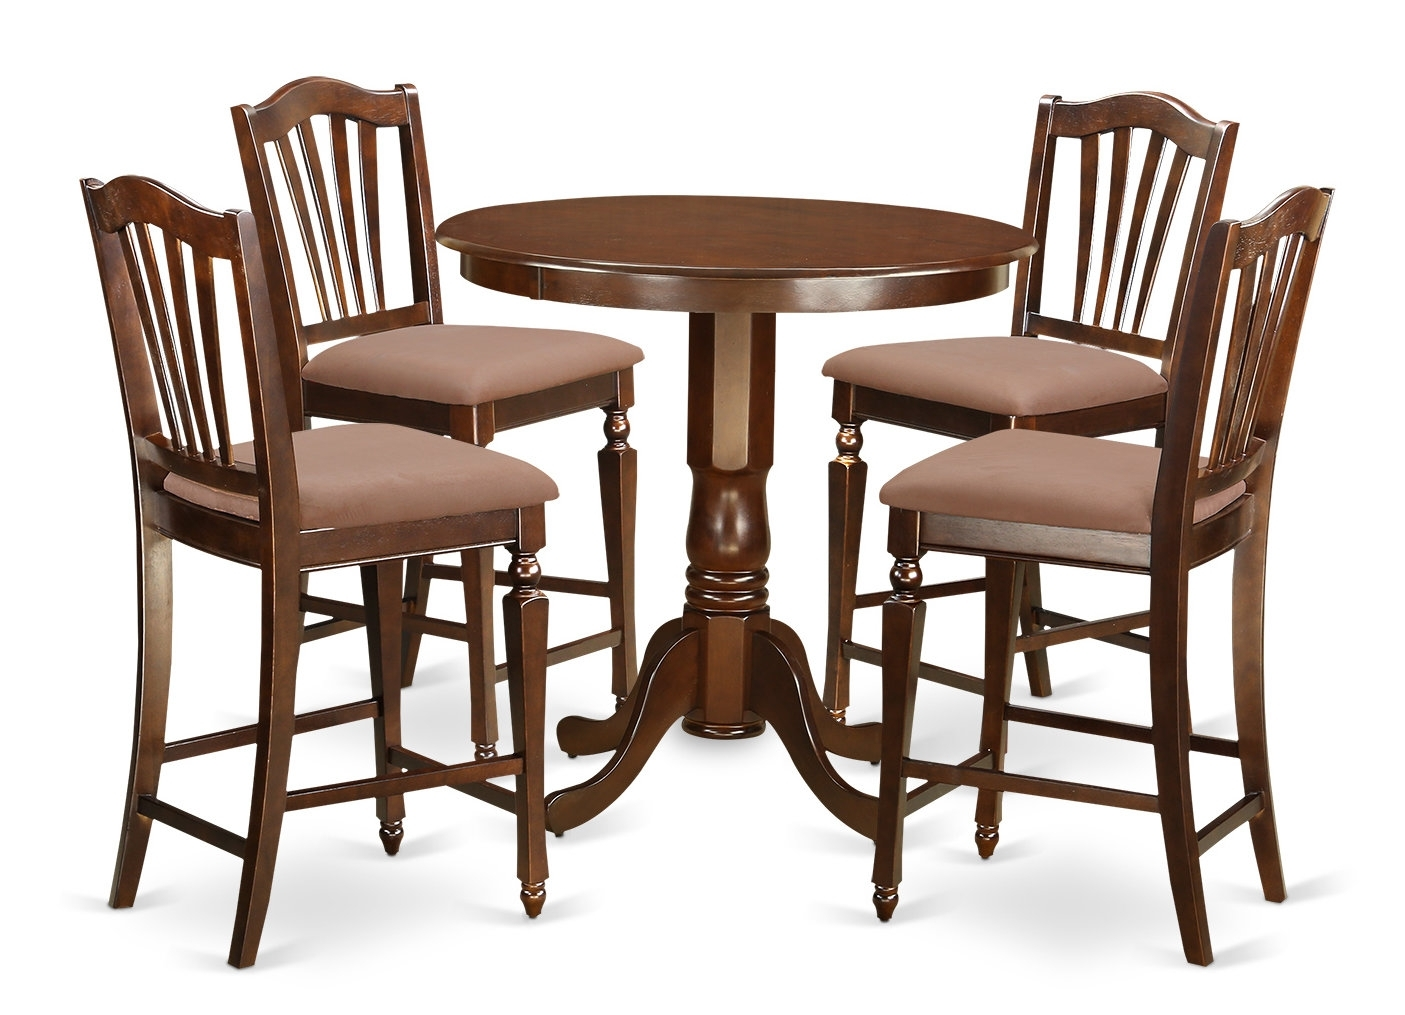 East West Jackson 5 Piece Counter Height Pub Table Set | Wayfair Regarding Most Popular Jaxon 5 Piece Round Dining Sets With Upholstered Chairs (Photo 15 of 20)